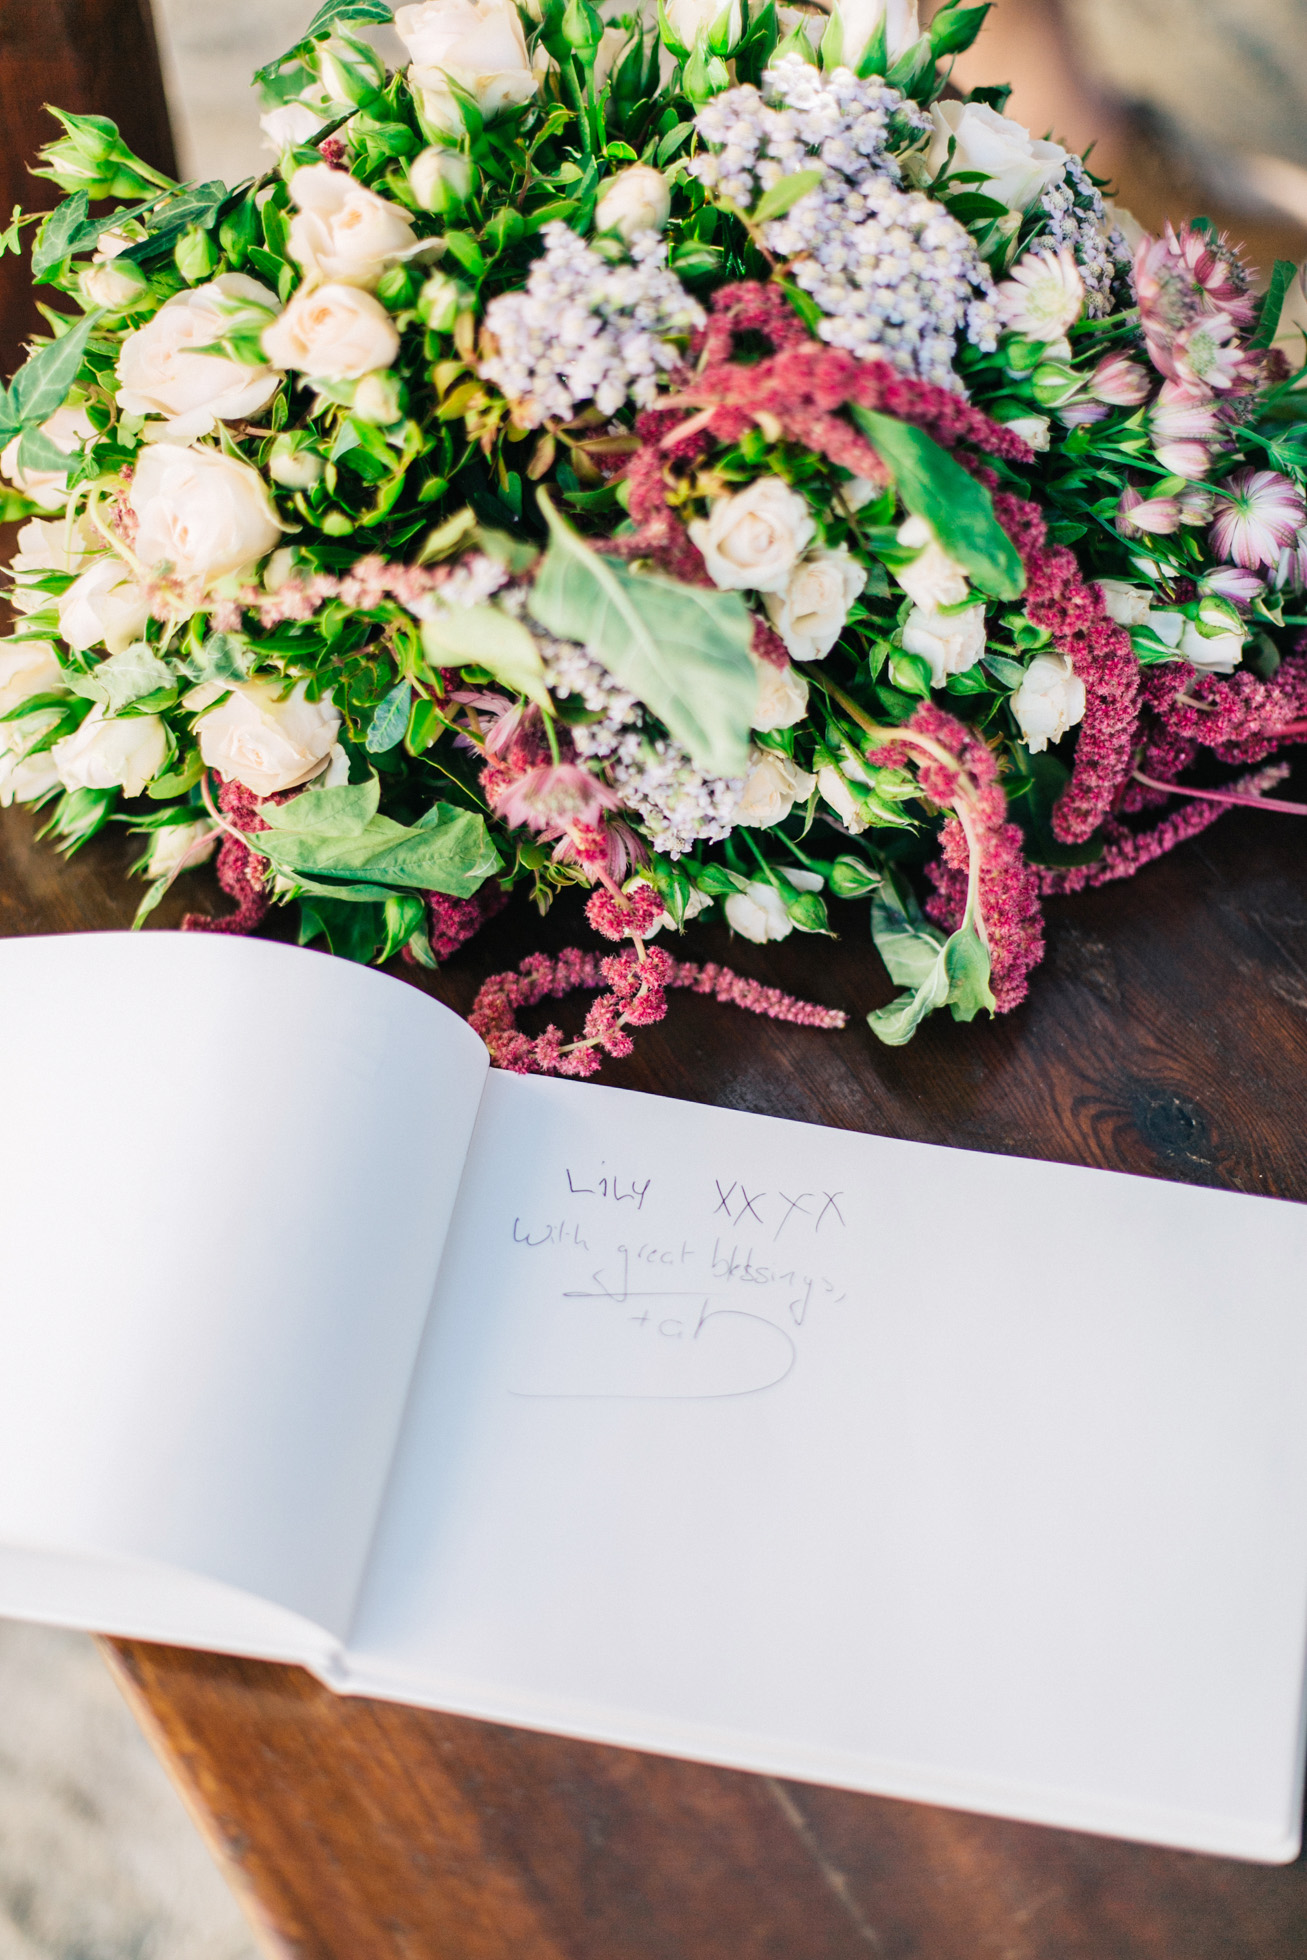 Rich floral decorations and wish book details created by Fabio Zardi and captured by wedding photographer during a destination wedding in Agreco farm in Crete.